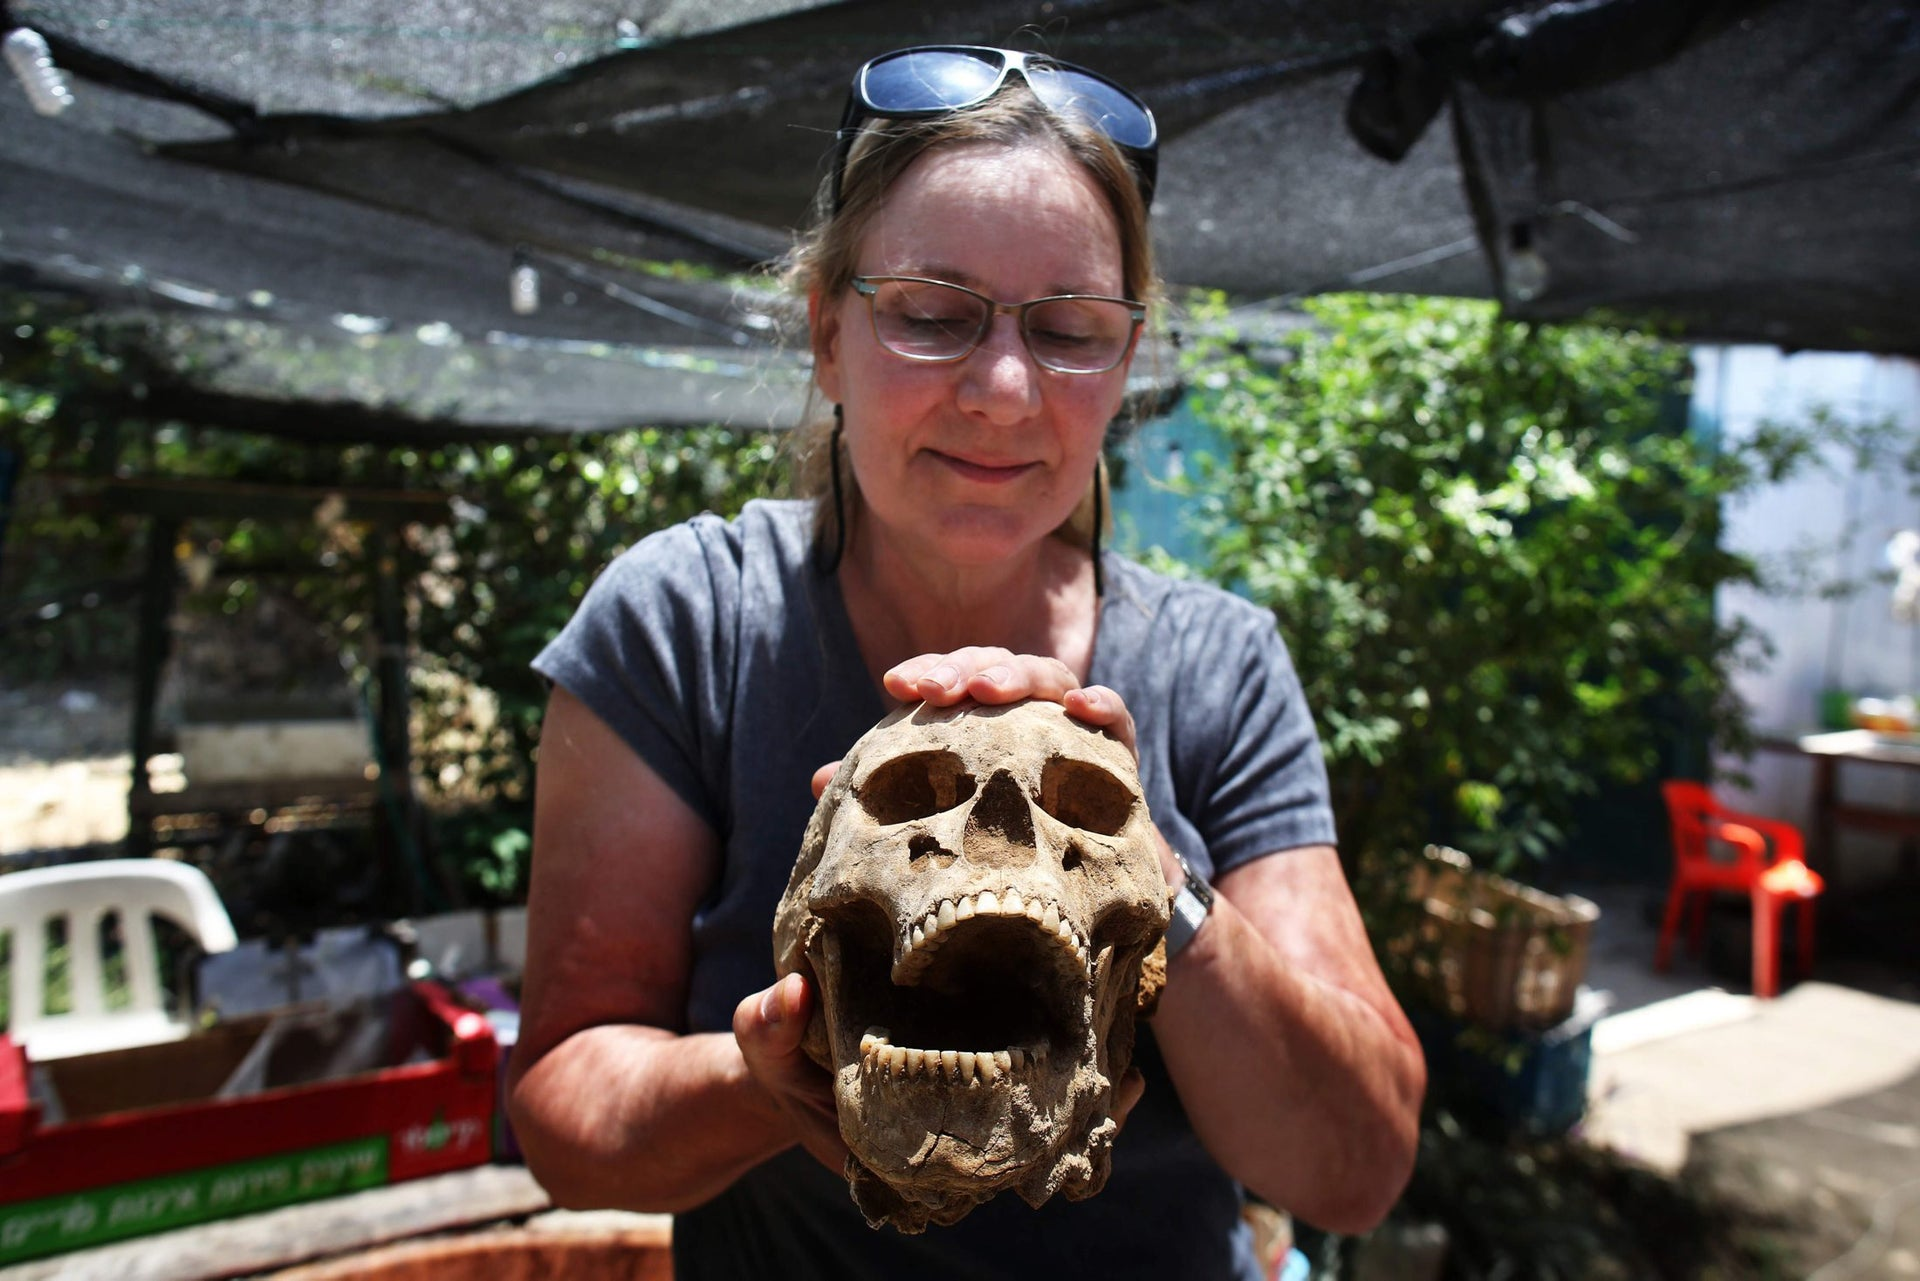 US anthropologist and pathologist, Sherry Fox shows a skull discovered at the excavation site of the first Philistine cemetery ever found on June 28, 2016 in the Mediterranean coastal Israeli city of Ashkelon.